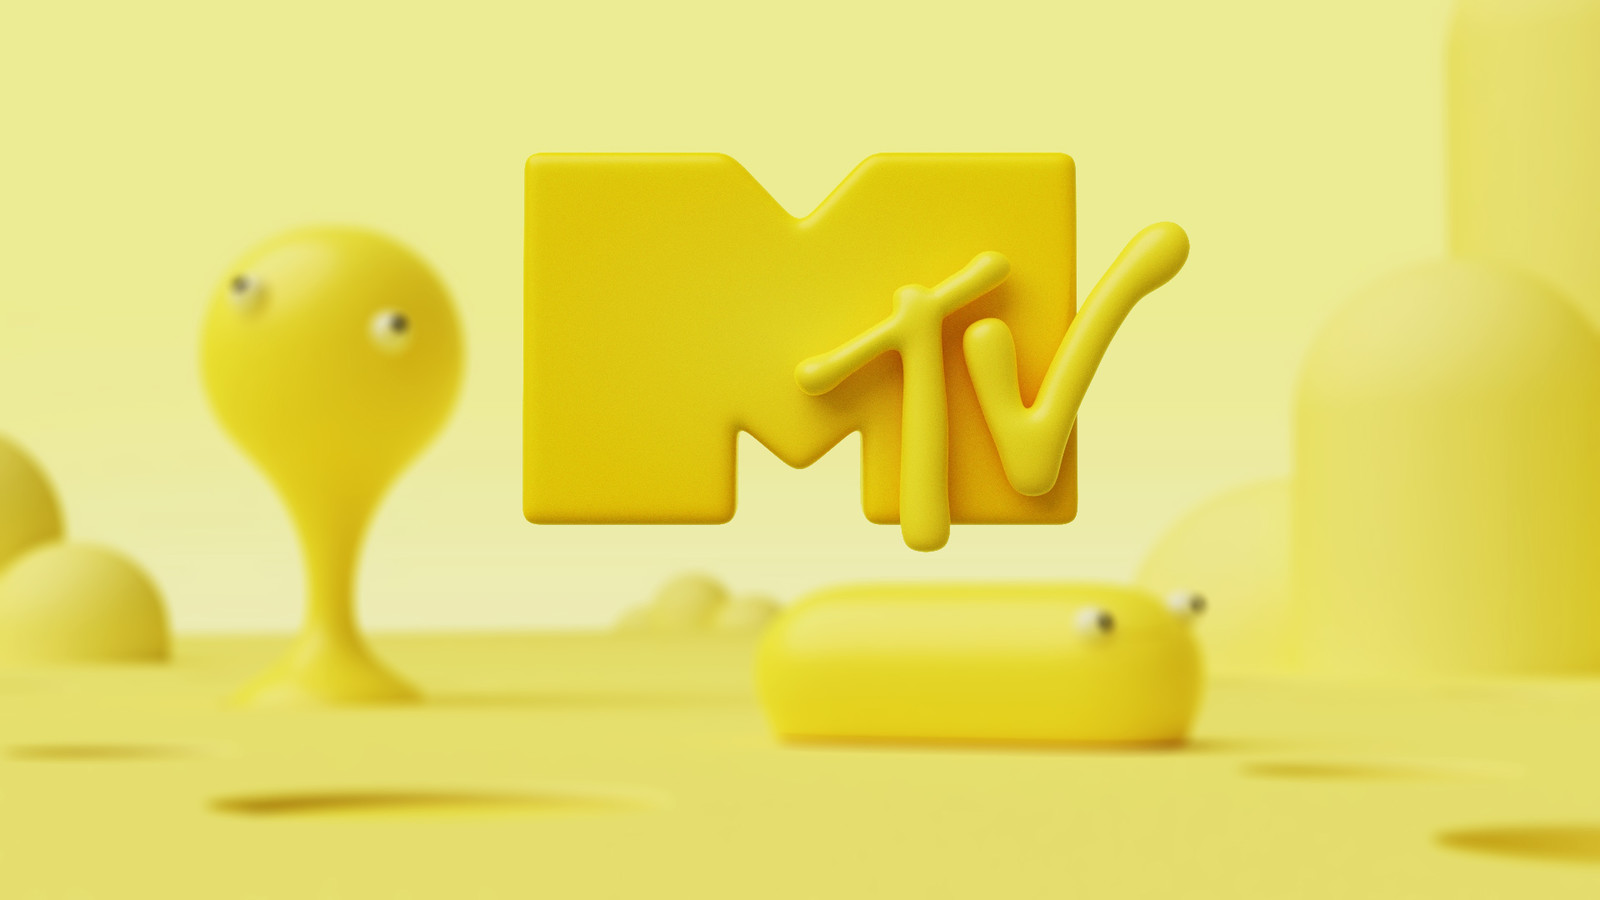 MTV Ident - Happy